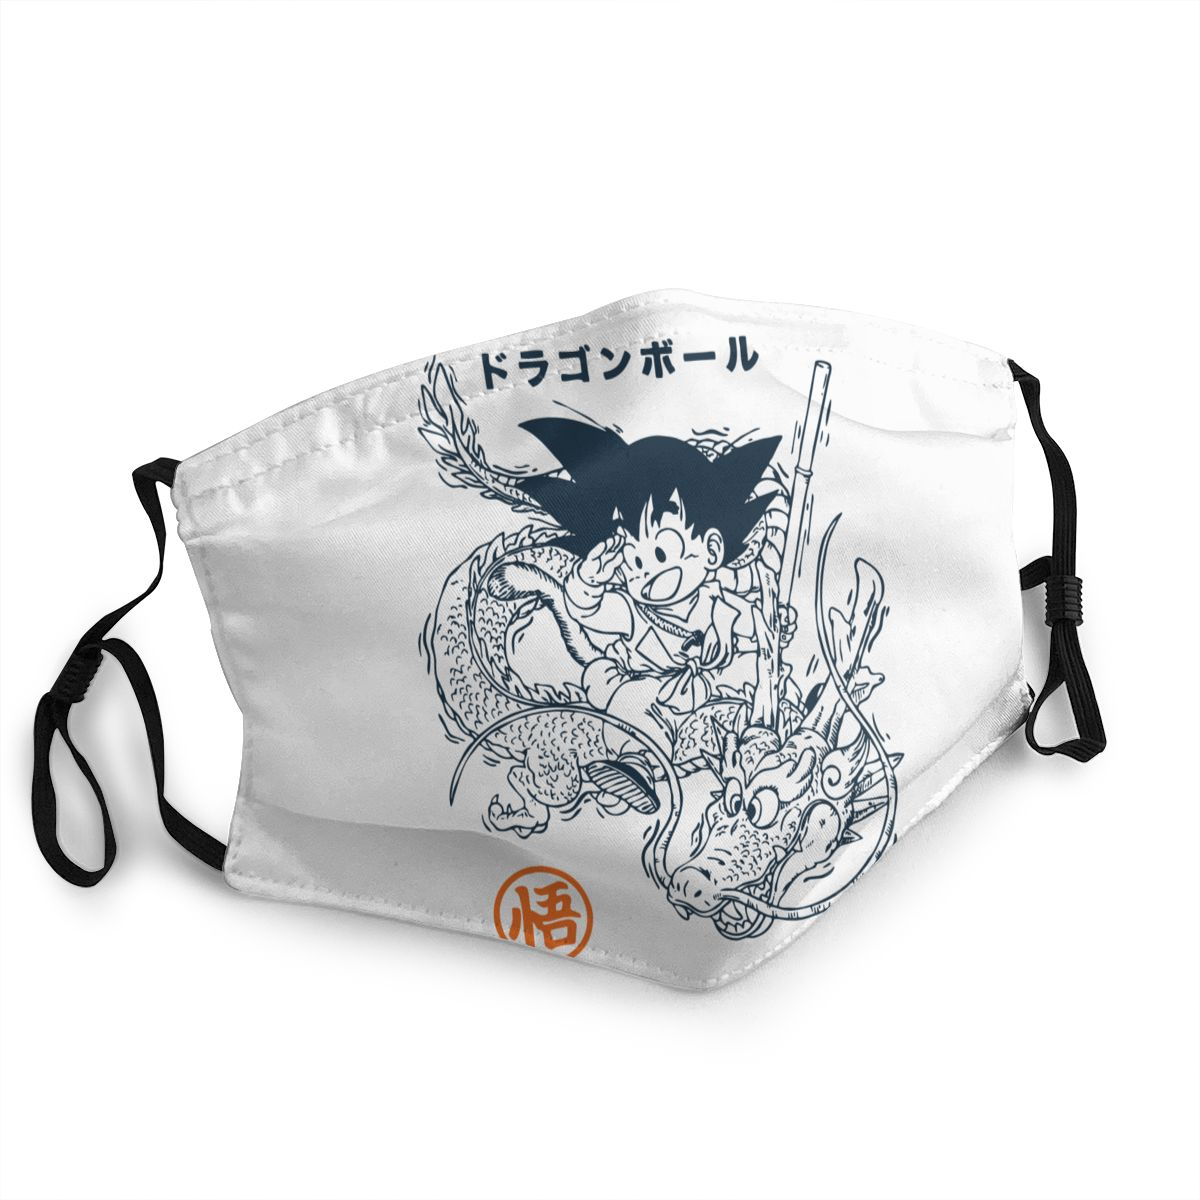 Goku And Shenron Dragon Ball Reusable Face Mask Vegeta Dbz Anime Harajuku Anti Bacterial Dustproof Protection Cover Respirator